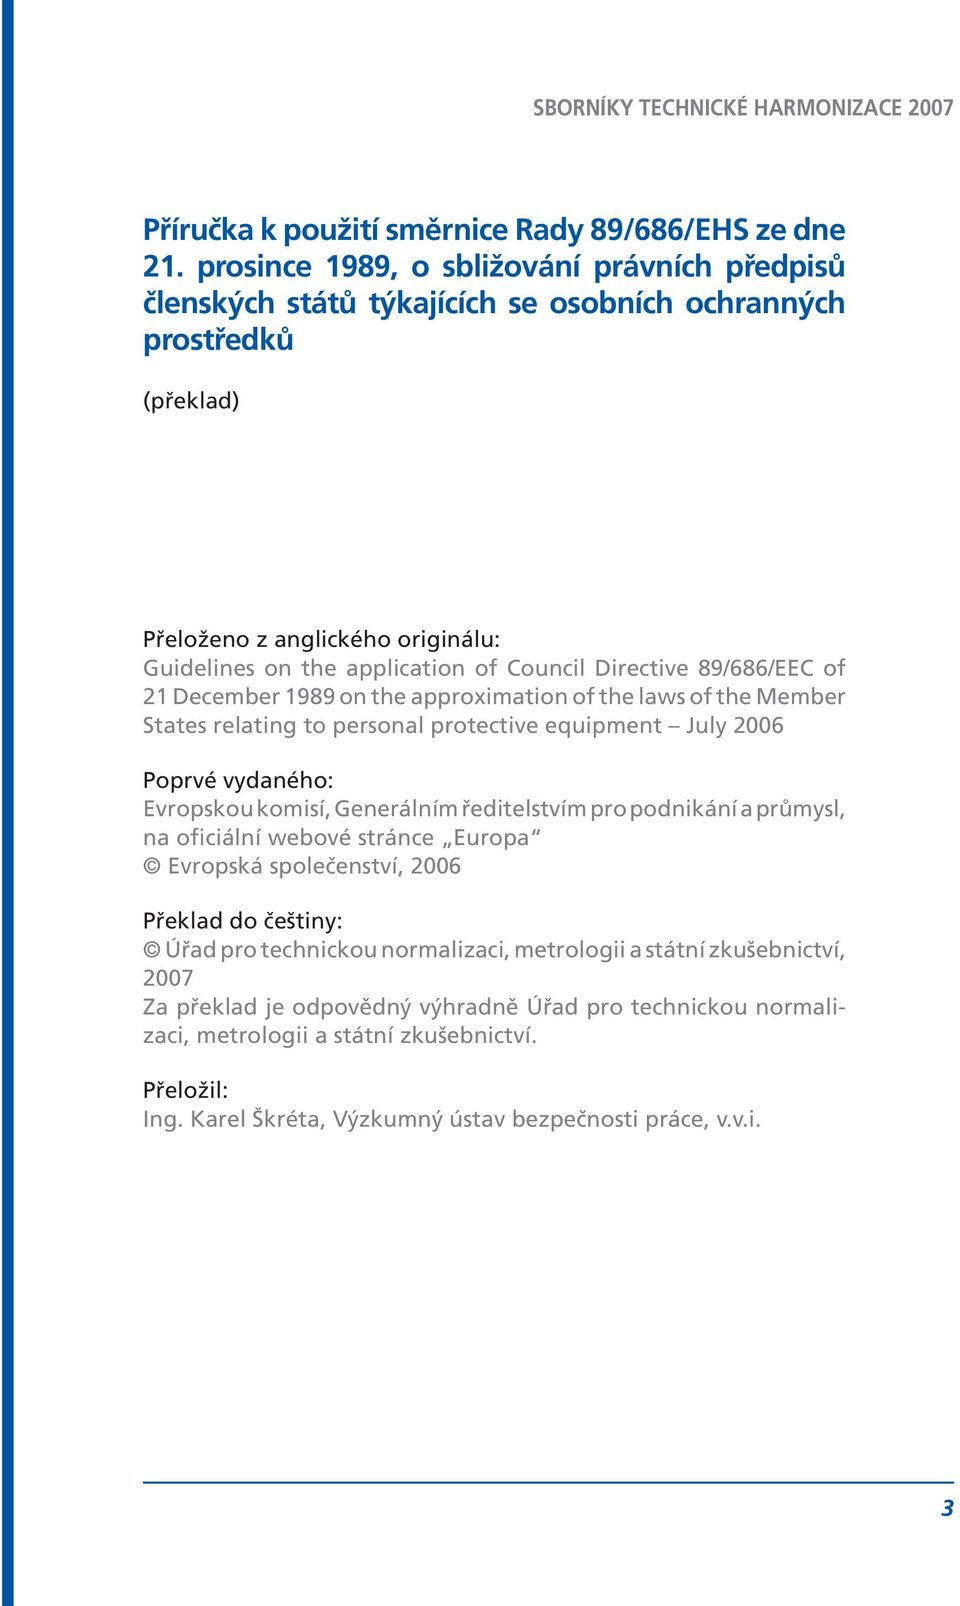 Directive 89/686/EEC of 21 December 1989 on the approximation of the laws of the Member States relating to personal protective equipment July 2006 Poprvé vydaného: Evropskou komisí, Generálním